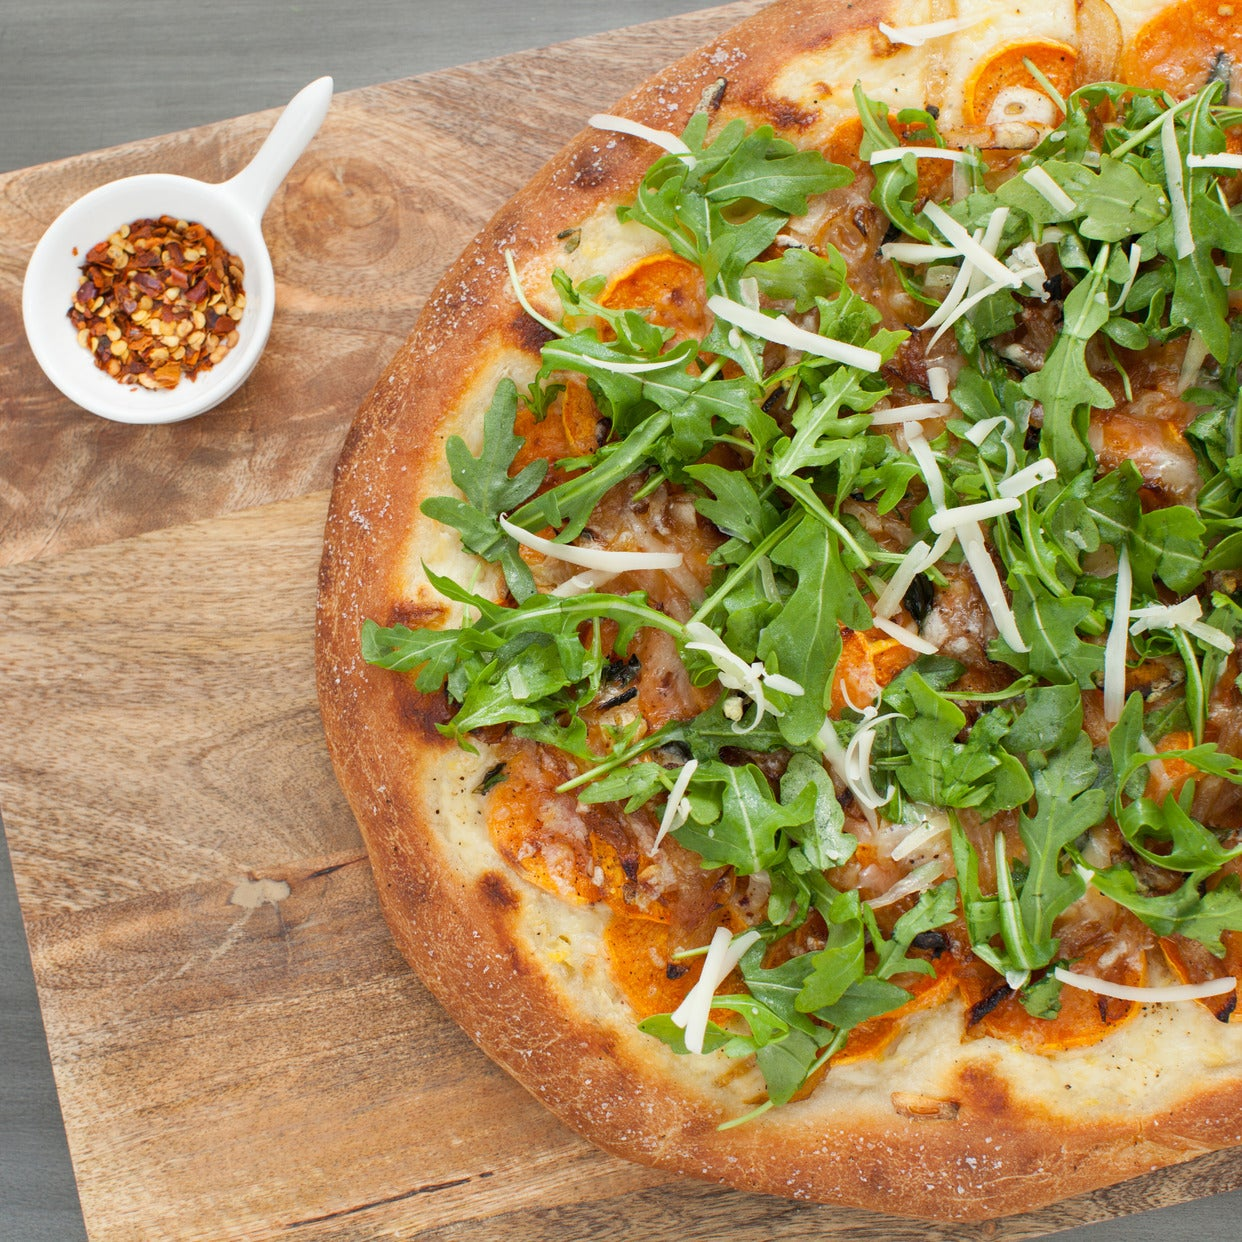 Roasted Sweet Potato & Caramelized Onion Pizza with Béchamel Sauce, Fontina Cheese & Arugula Salad